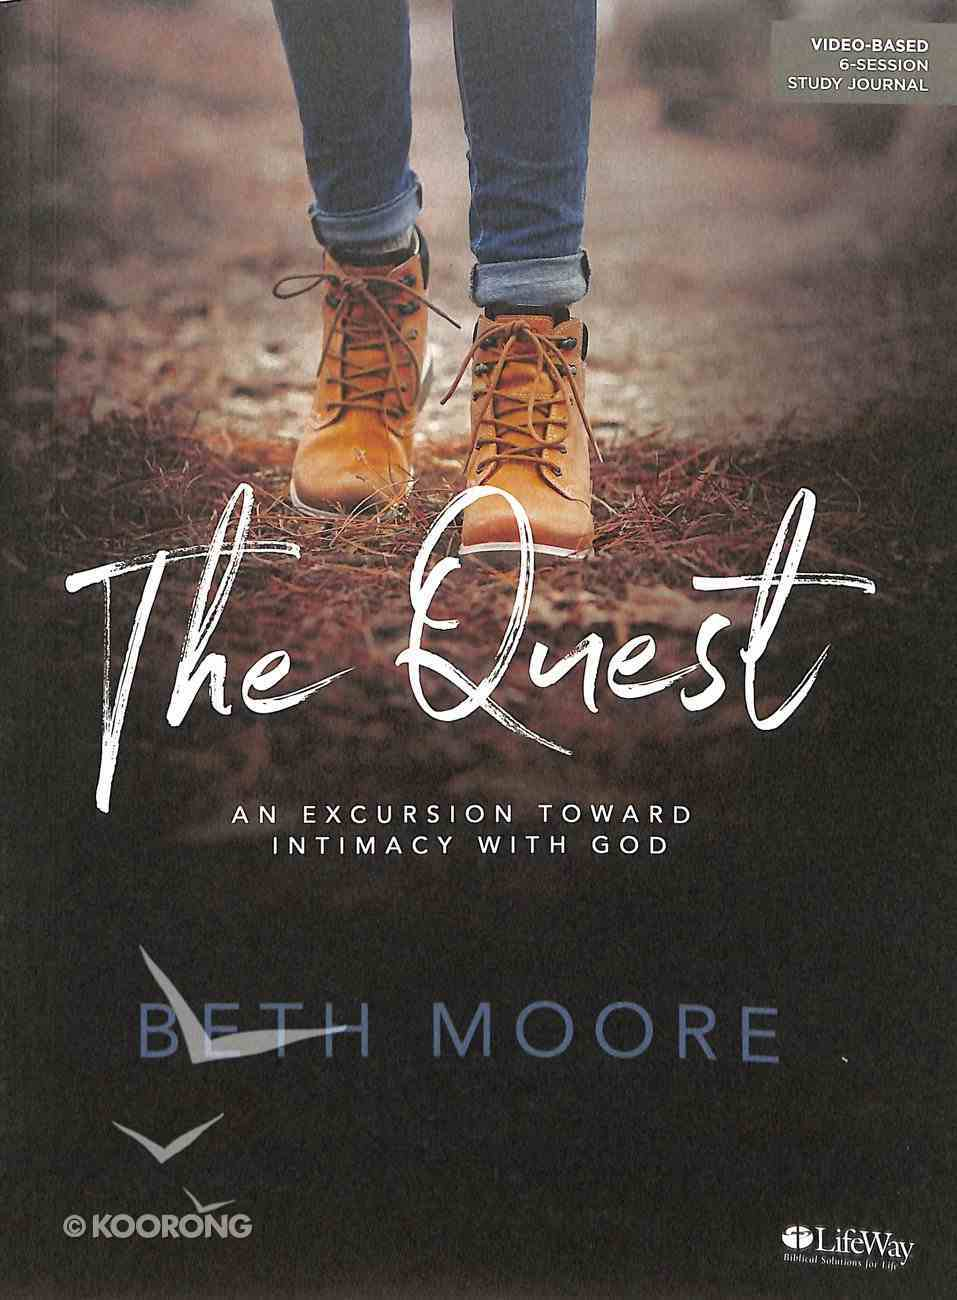 The Quest: An Excursion Toward Intimacy With God (Study Journal) Paperback